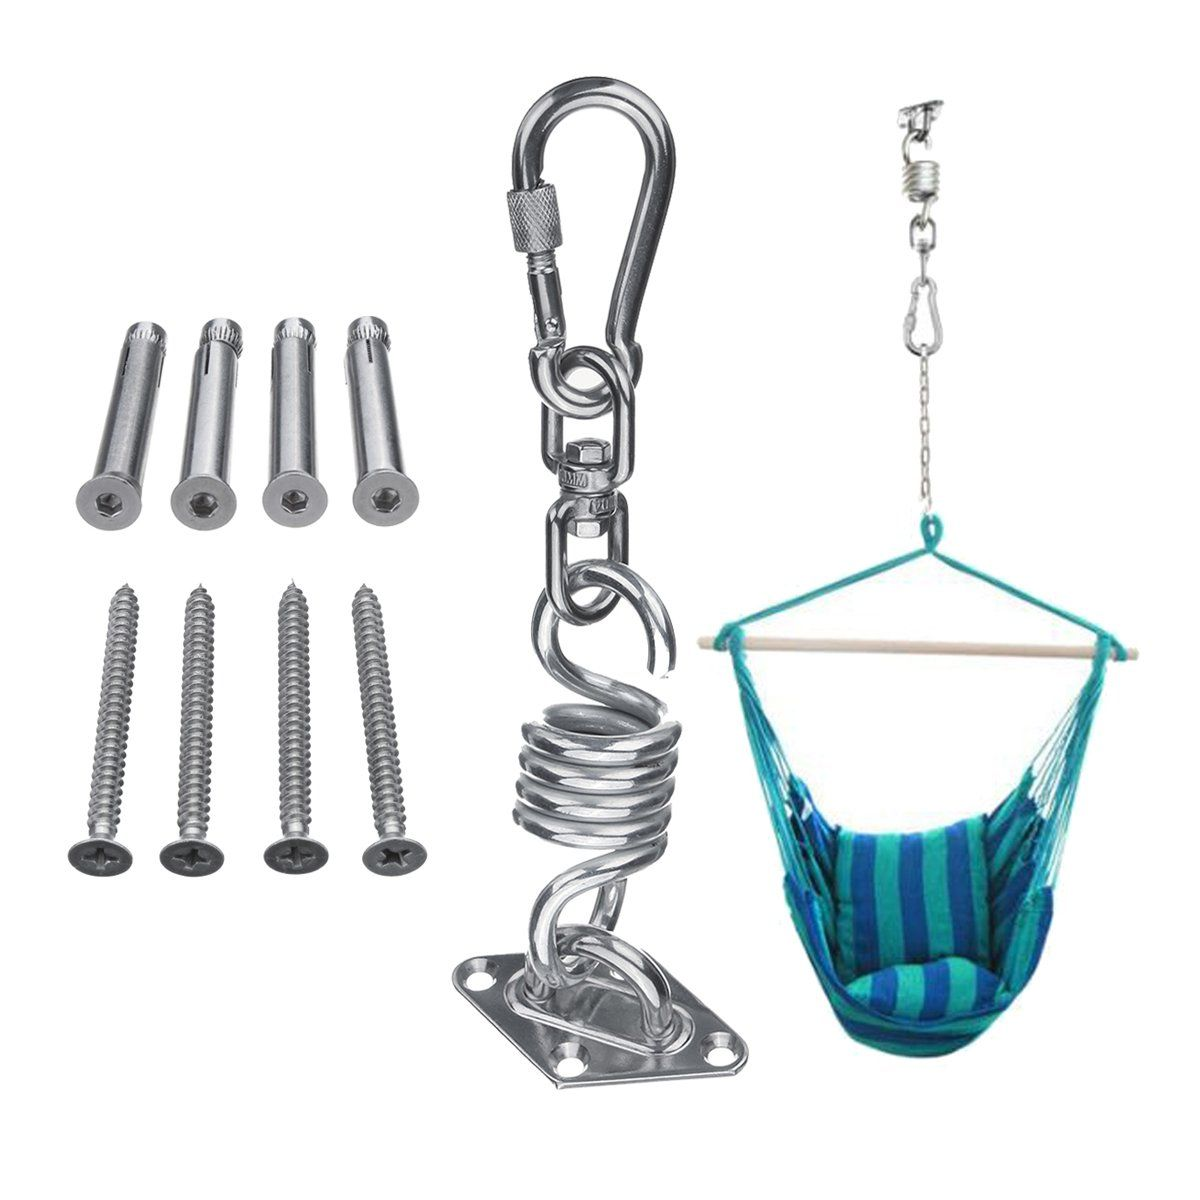 Stainless Steel Hammock Chair Hanging Kit Ceiling Mount Spring Swivel Snap Hook Accessories Hammock Chair Hammock Hammock Accessories